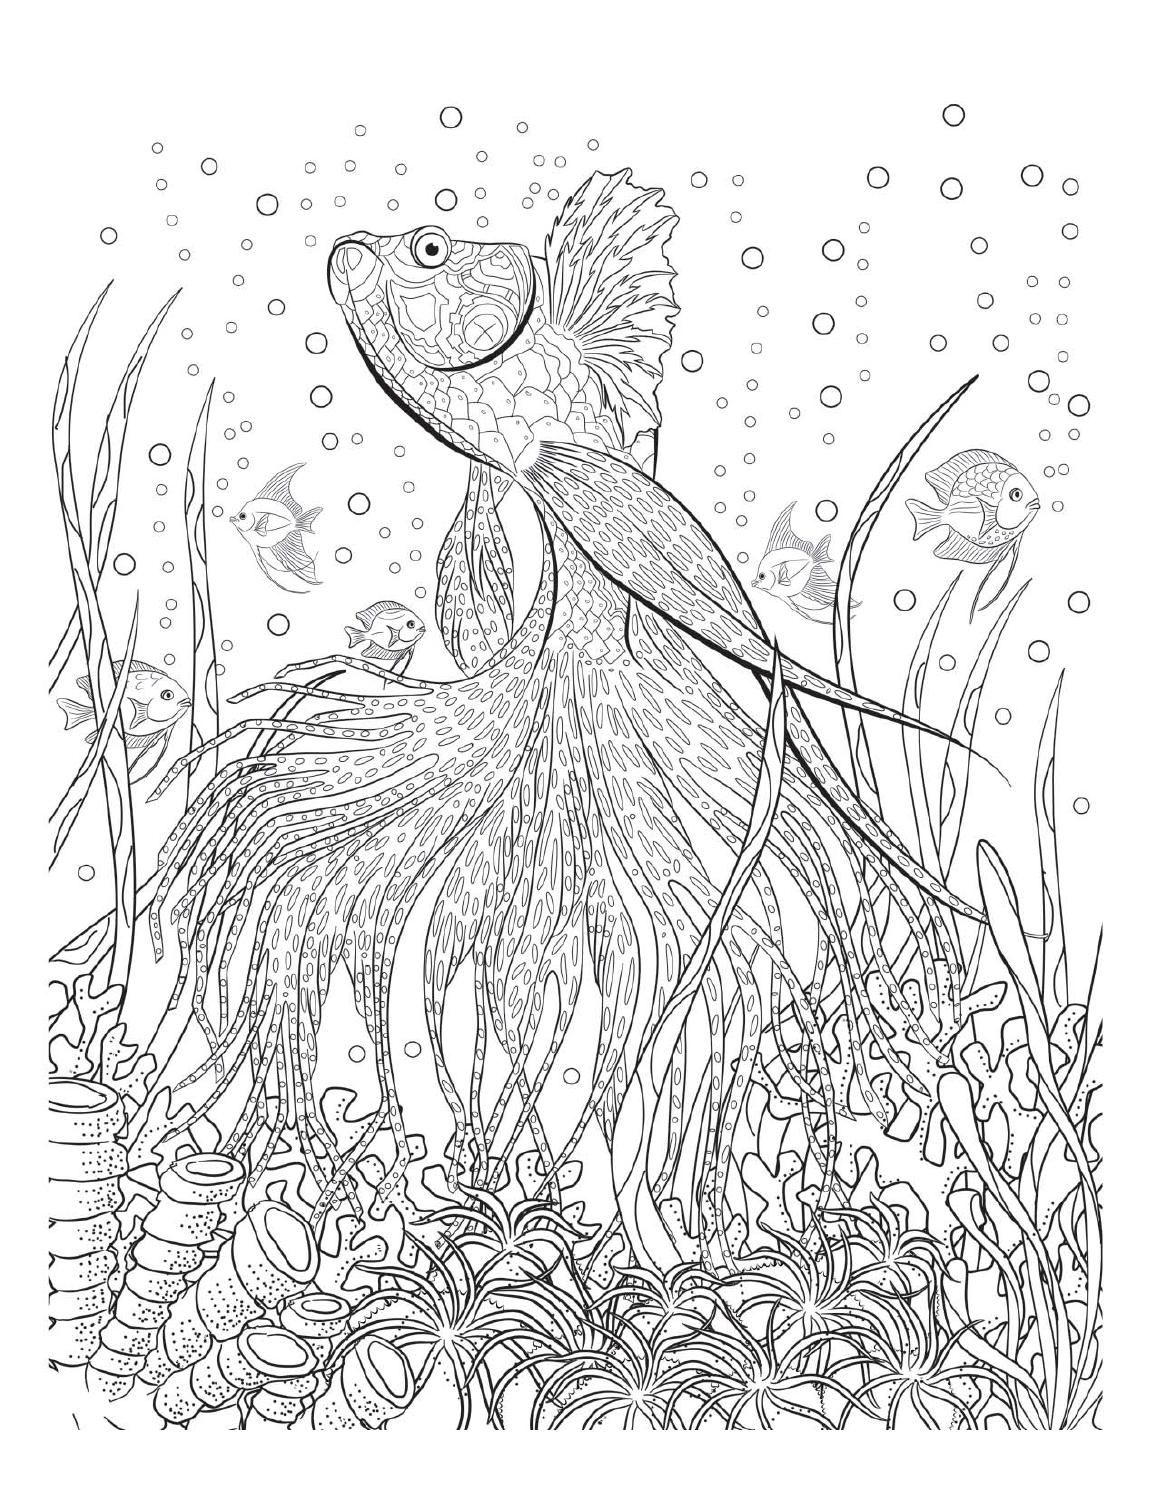 Stress relief coloring pages - Craft Oceana Adult Coloring Book Twenty Creative And Stress Relieving Coloring Pages